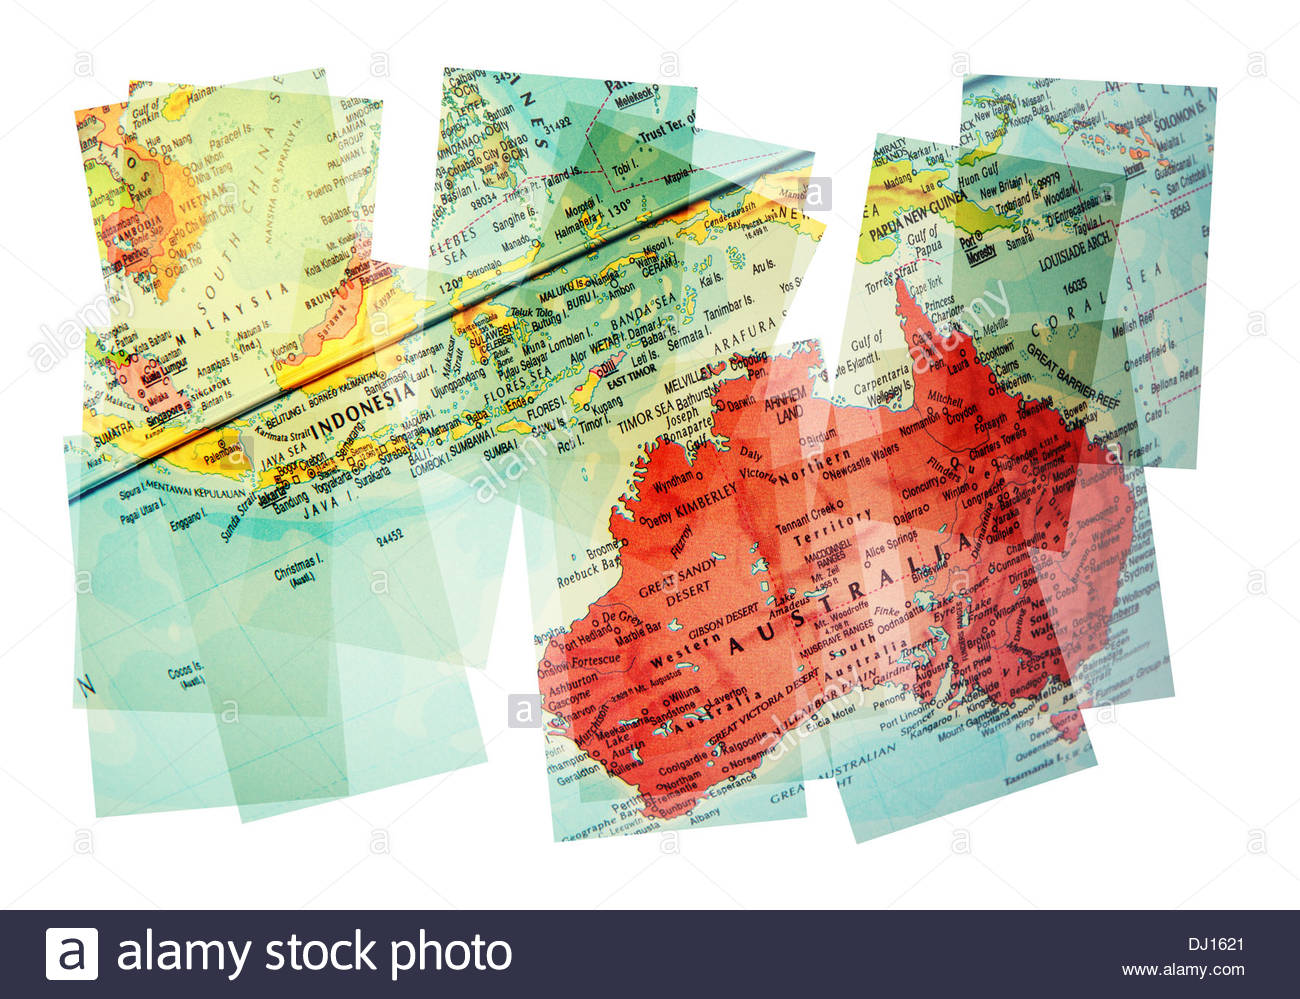 Australia map collage stock photo 62721625 alamy australia map collage gumiabroncs Image collections